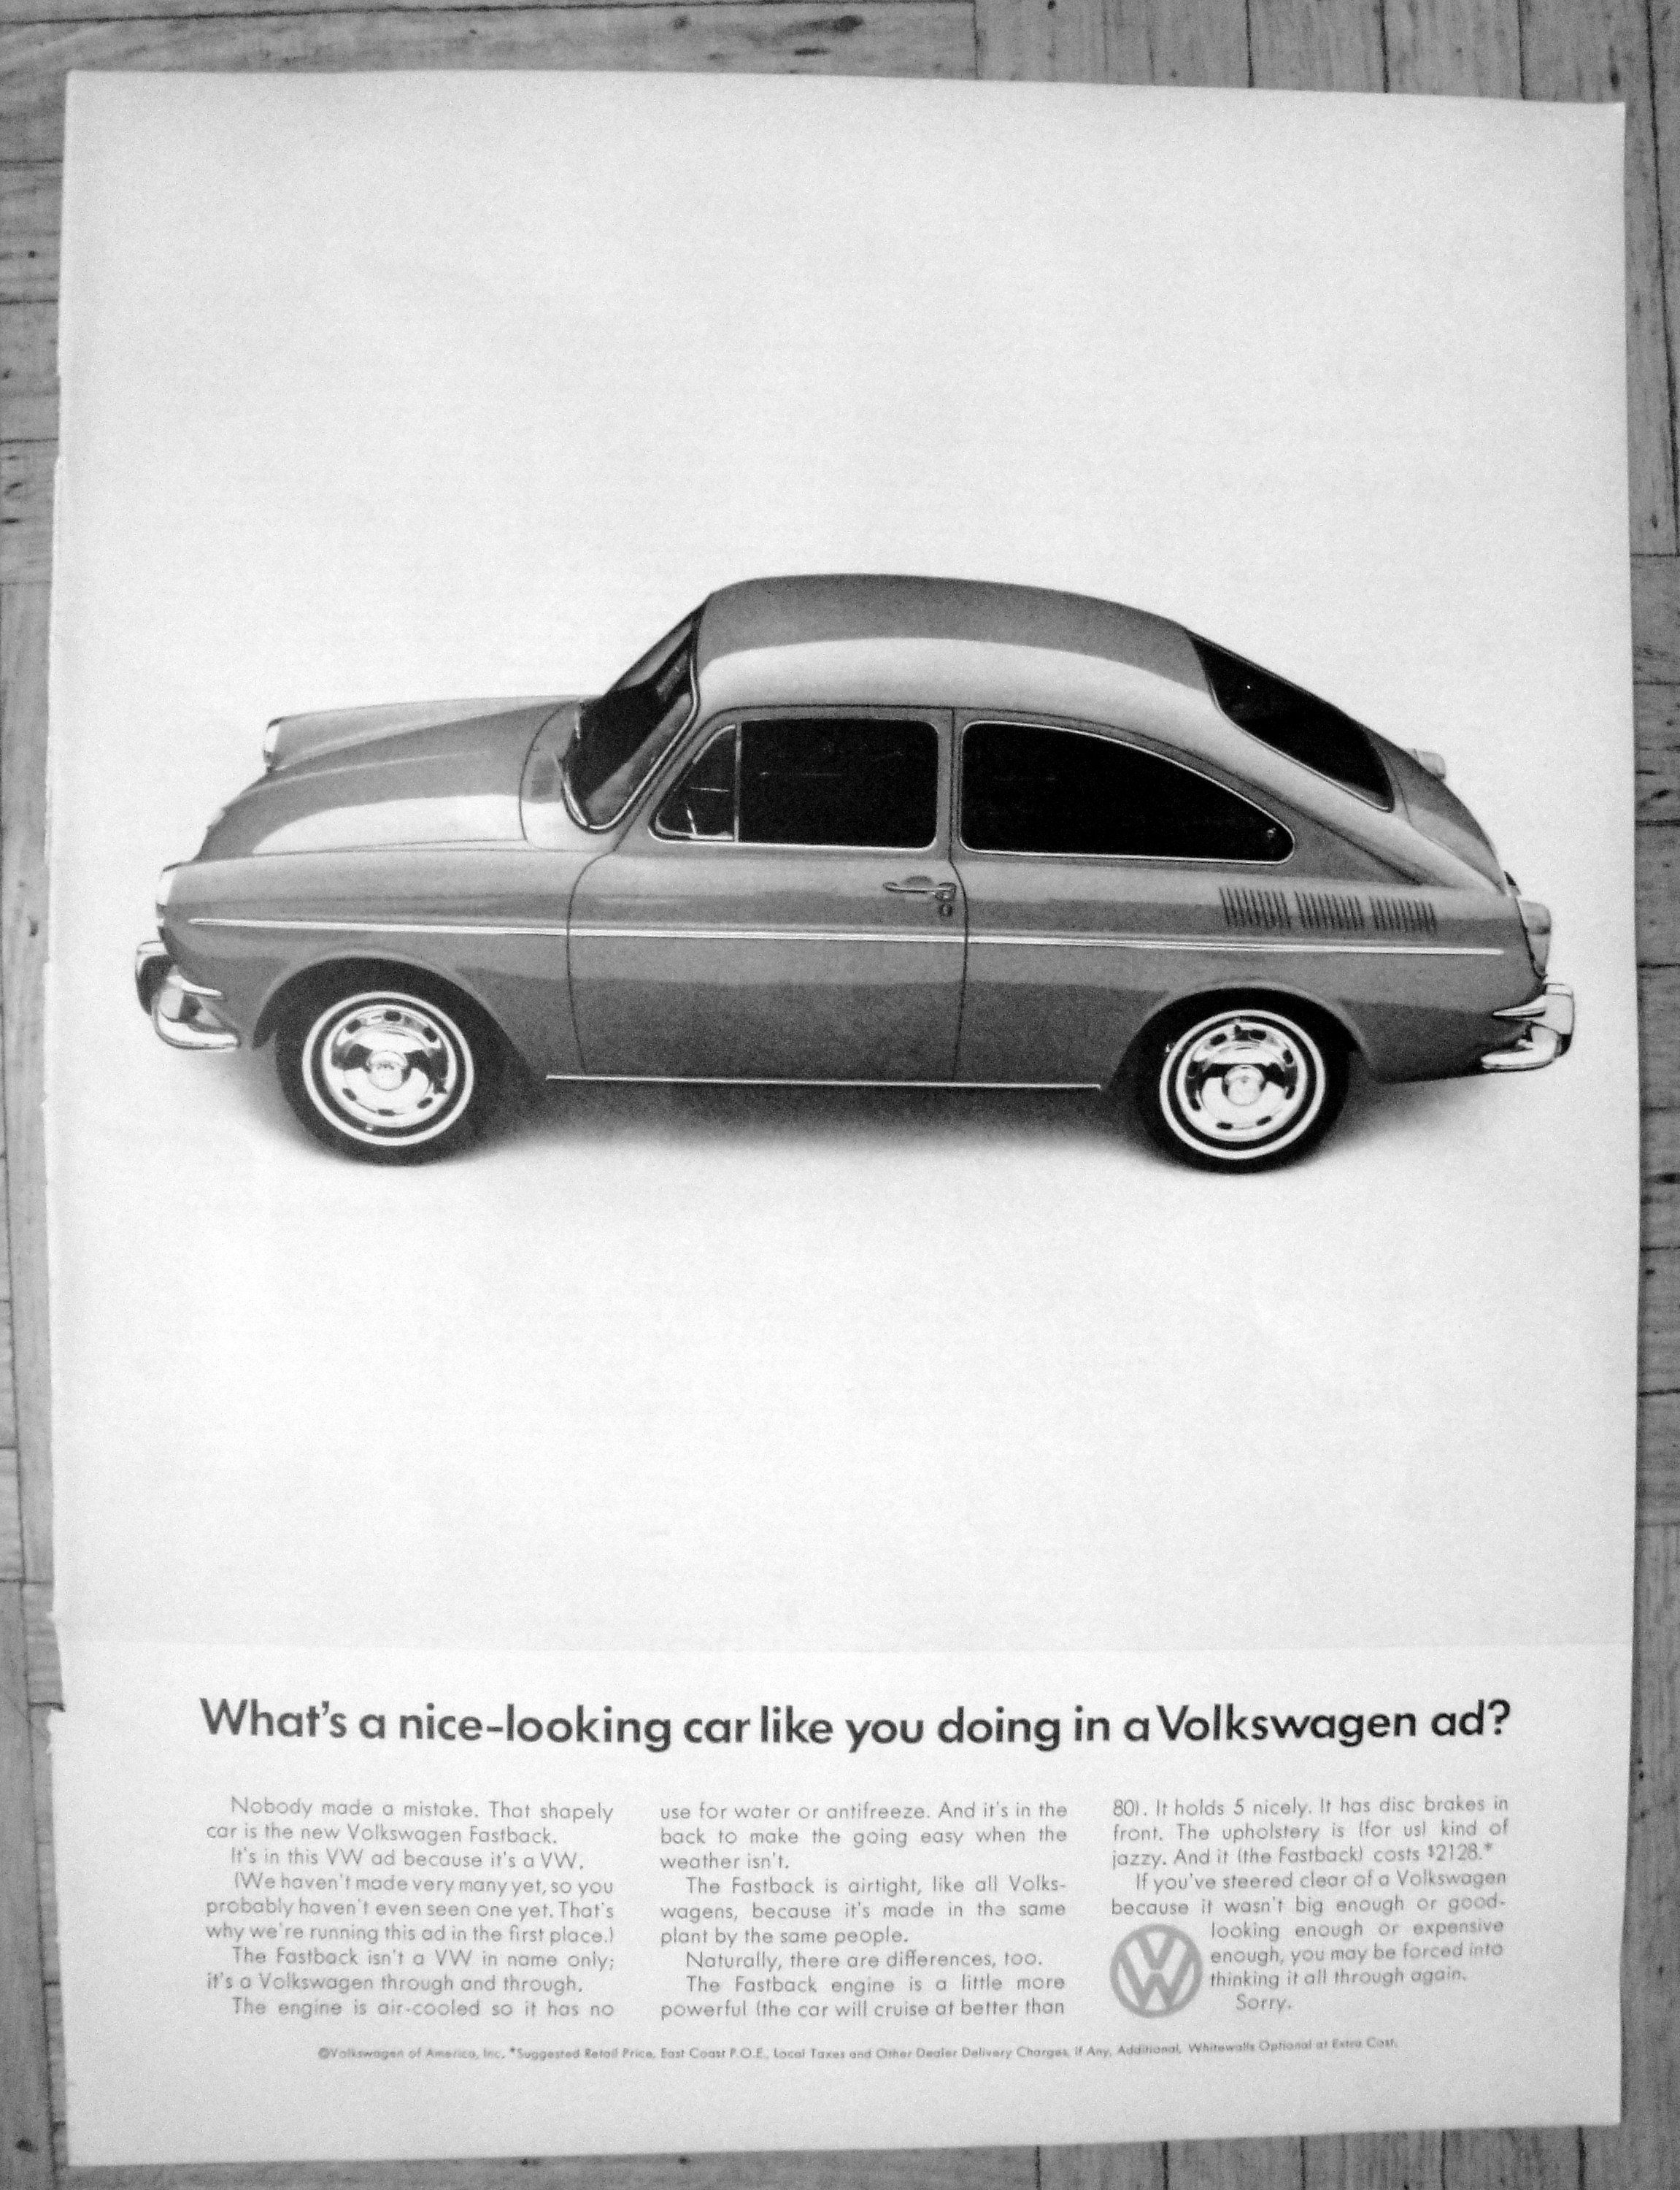 1966 VW Fastback-What's A Nice Looking Car-Original 13 5